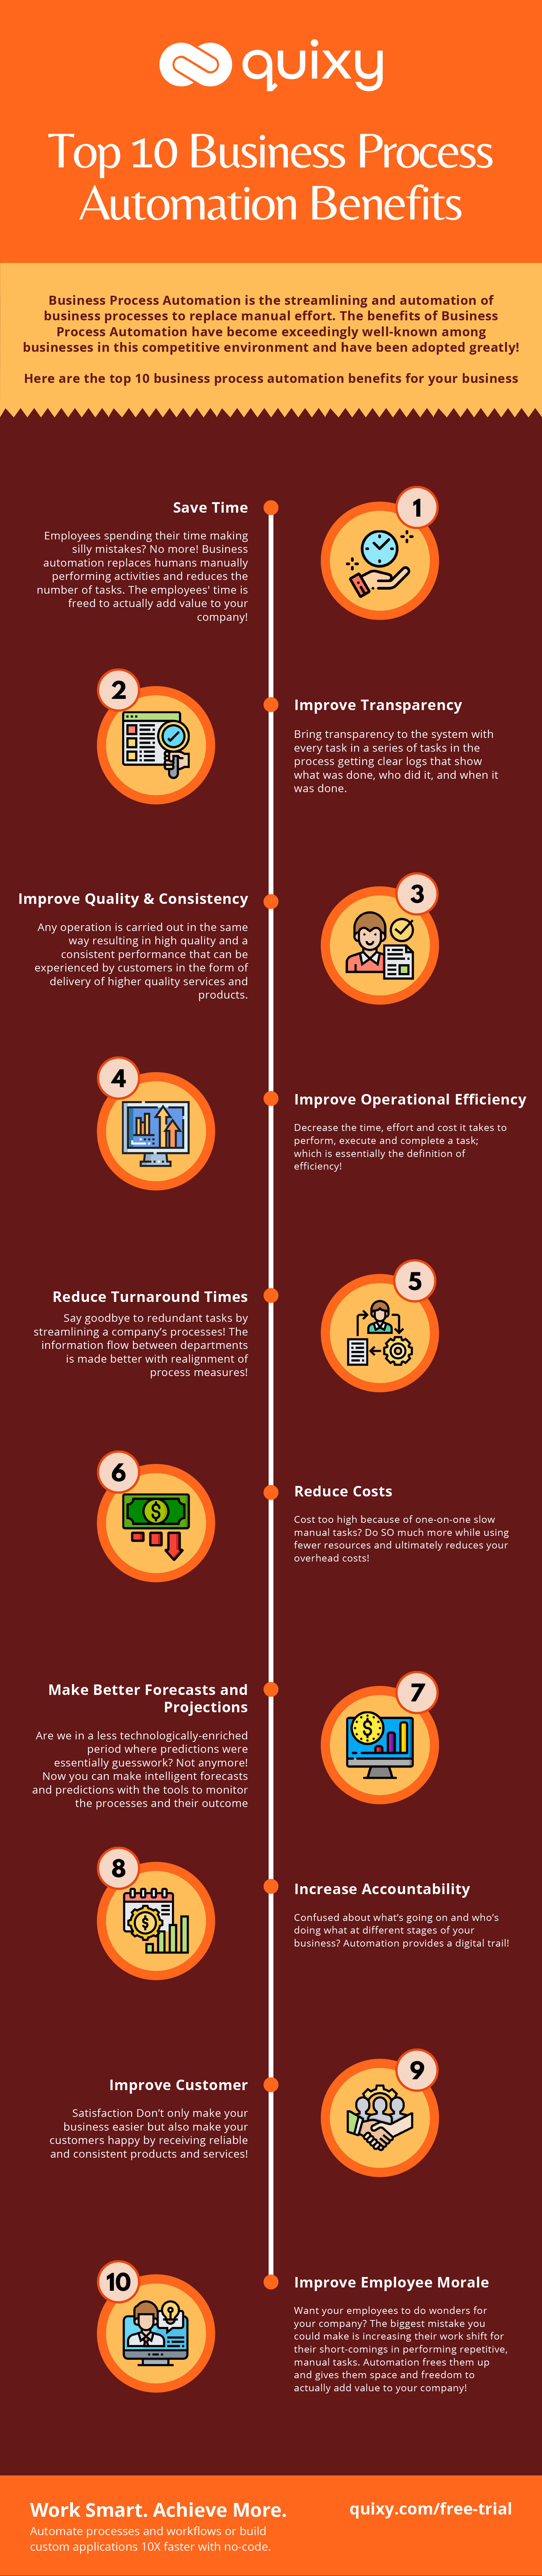 Top 10 Business Process Automation Benefits